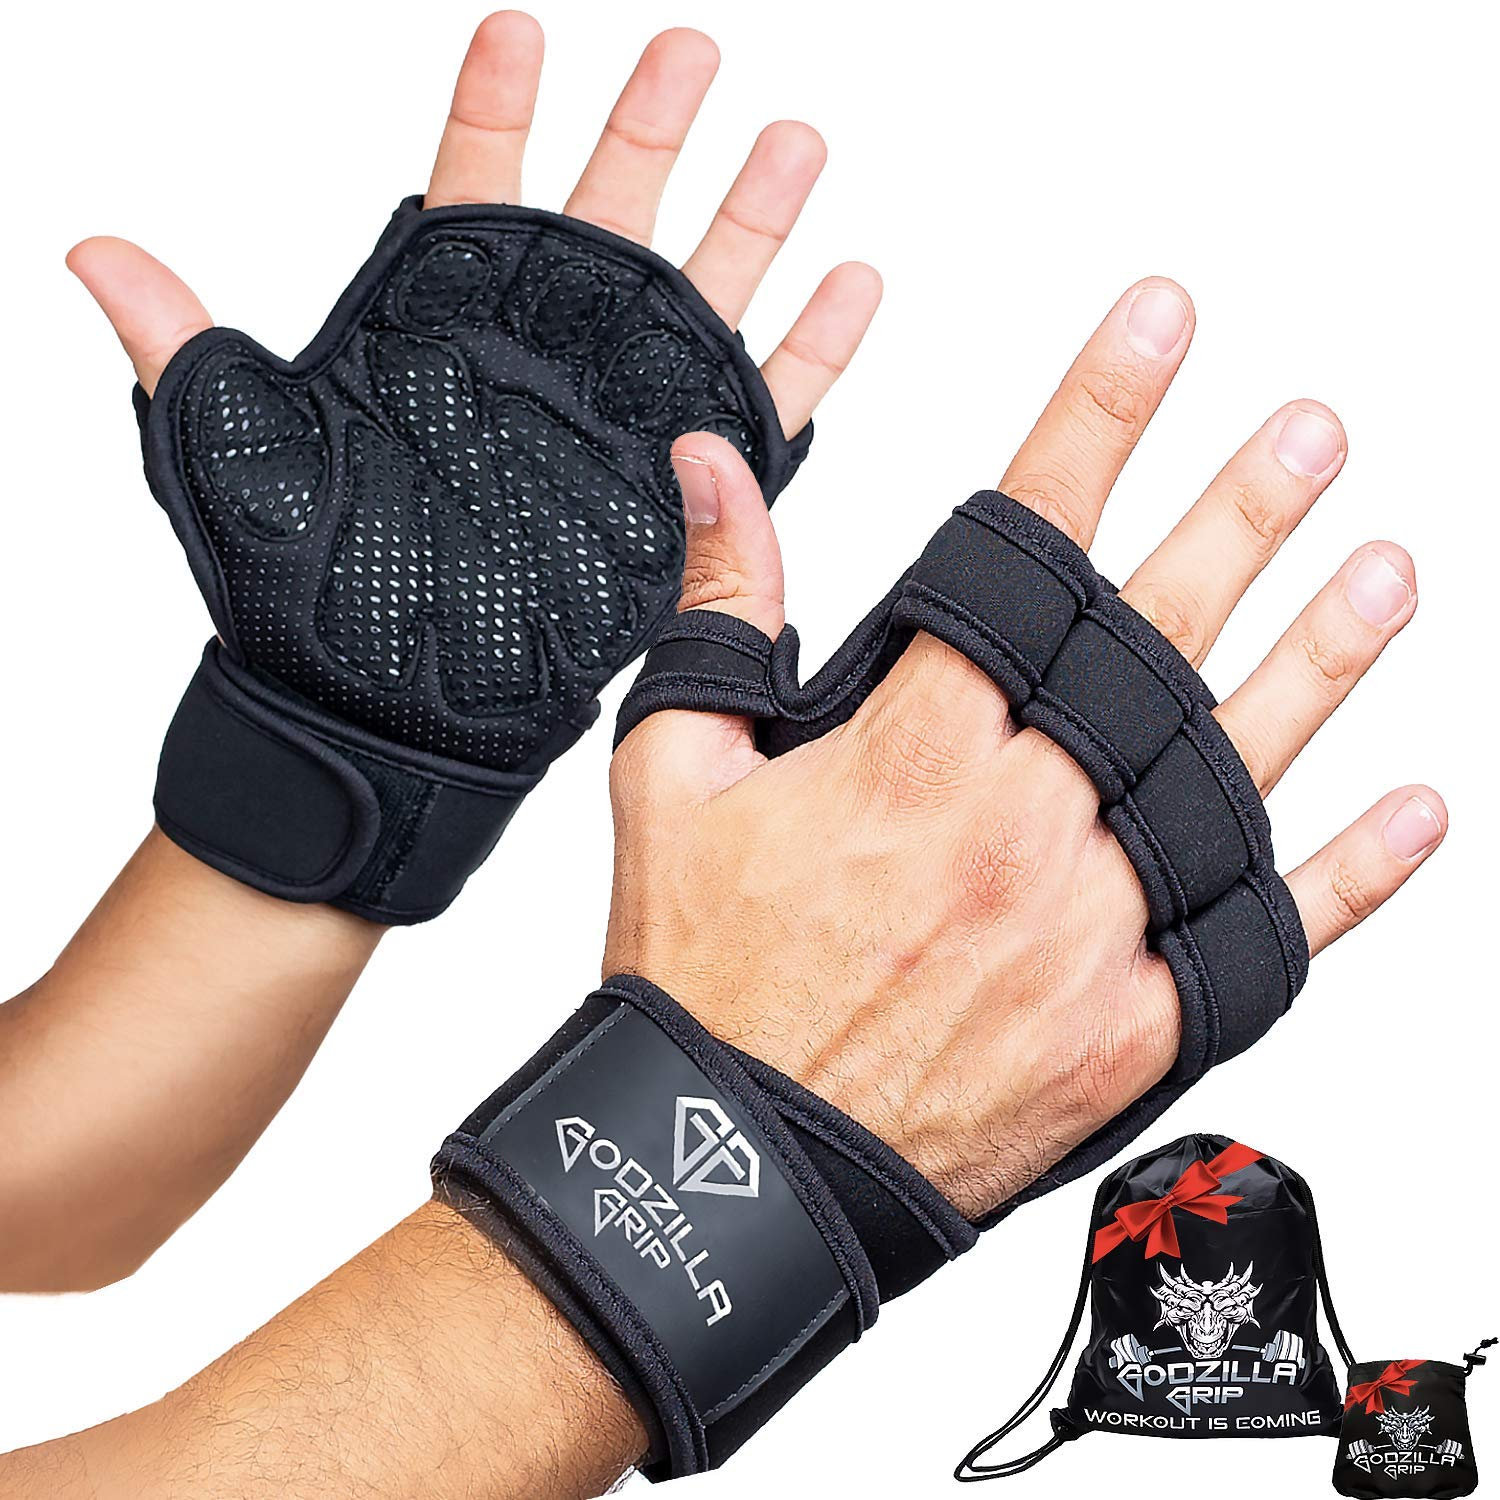 Amazon.com: Godzilla Grip Fitness Guantes para levantamiento ...